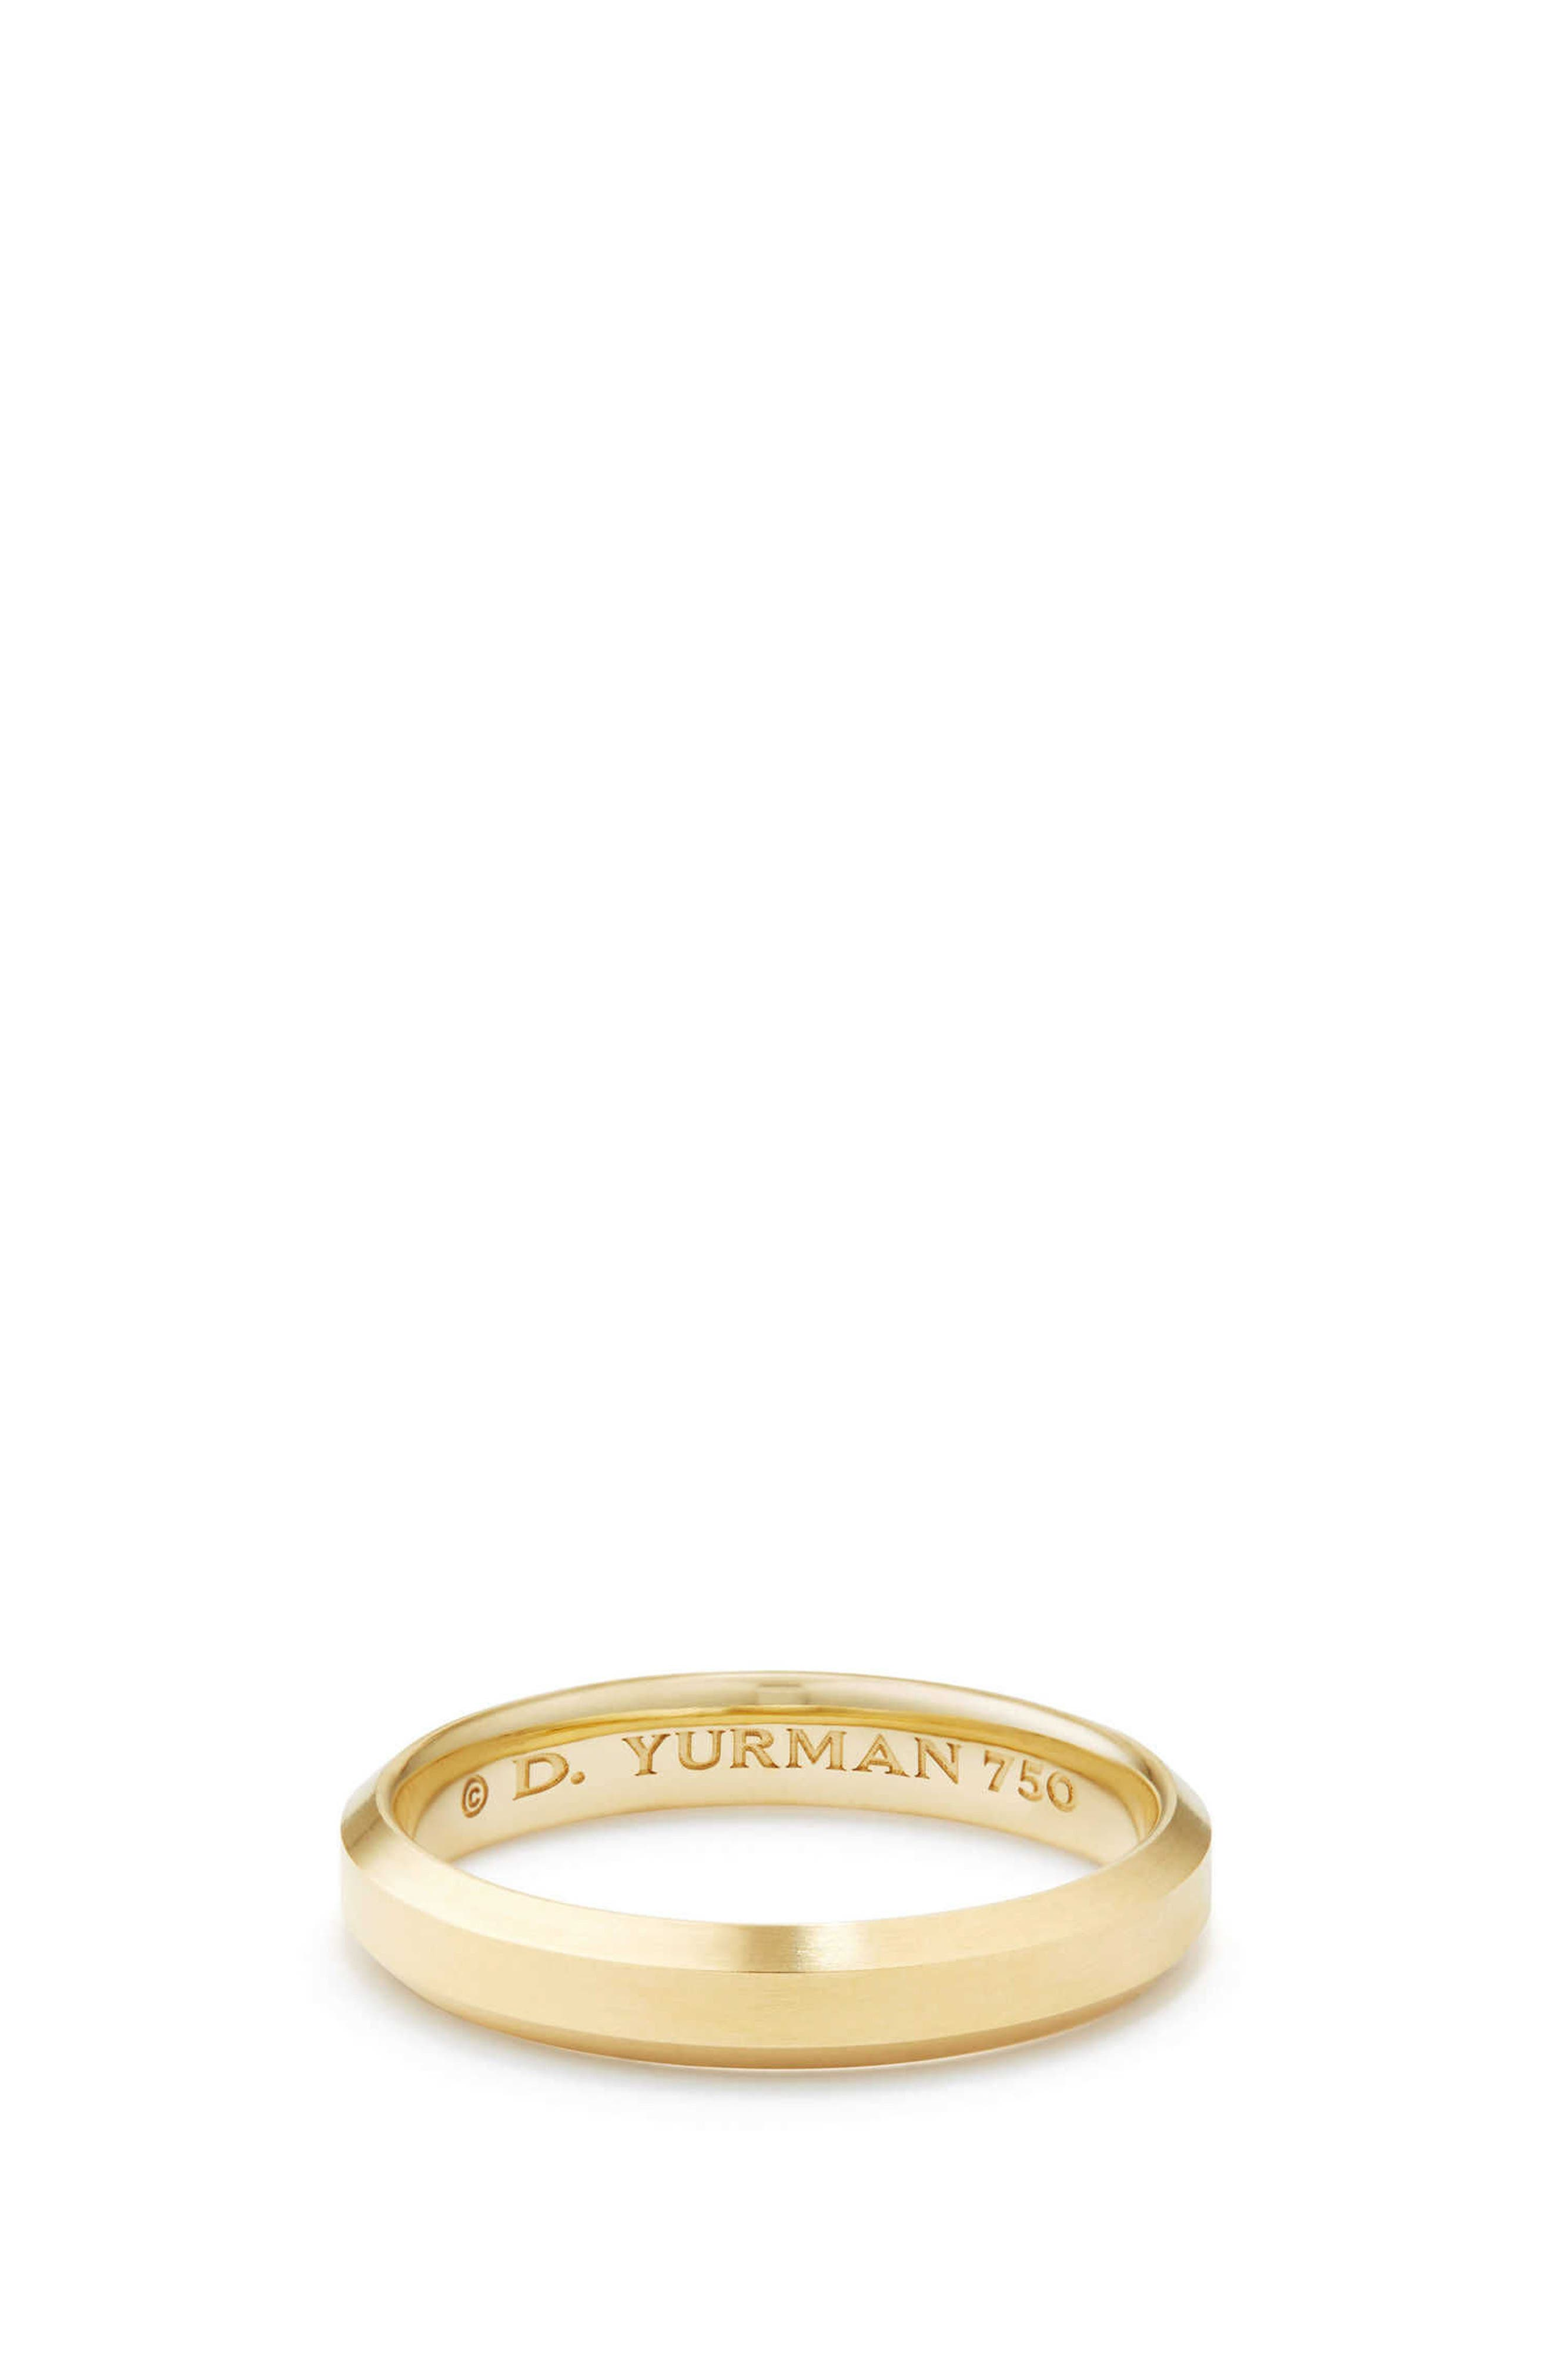 Streamline Band Ring in 18K Gold,                         Main,                         color, Gold